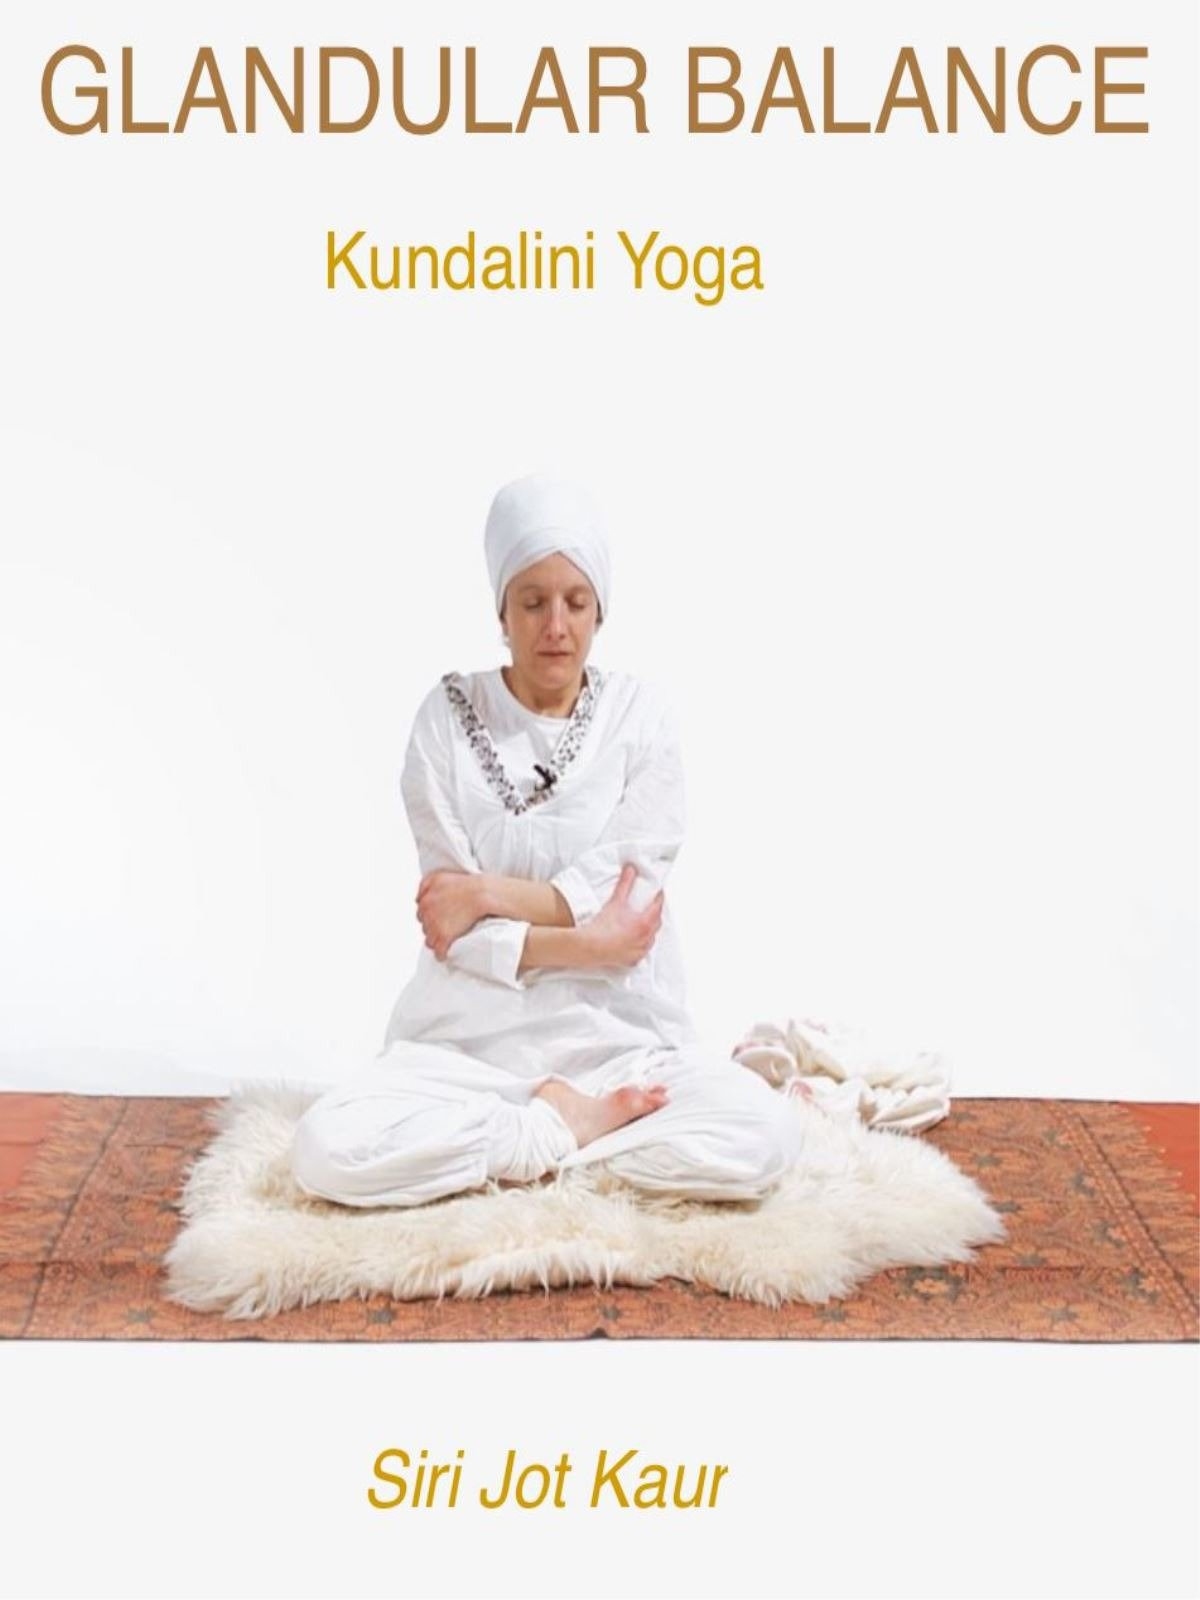 Kundalini Yoga for Glandular Balance with Siri Jot Kaur